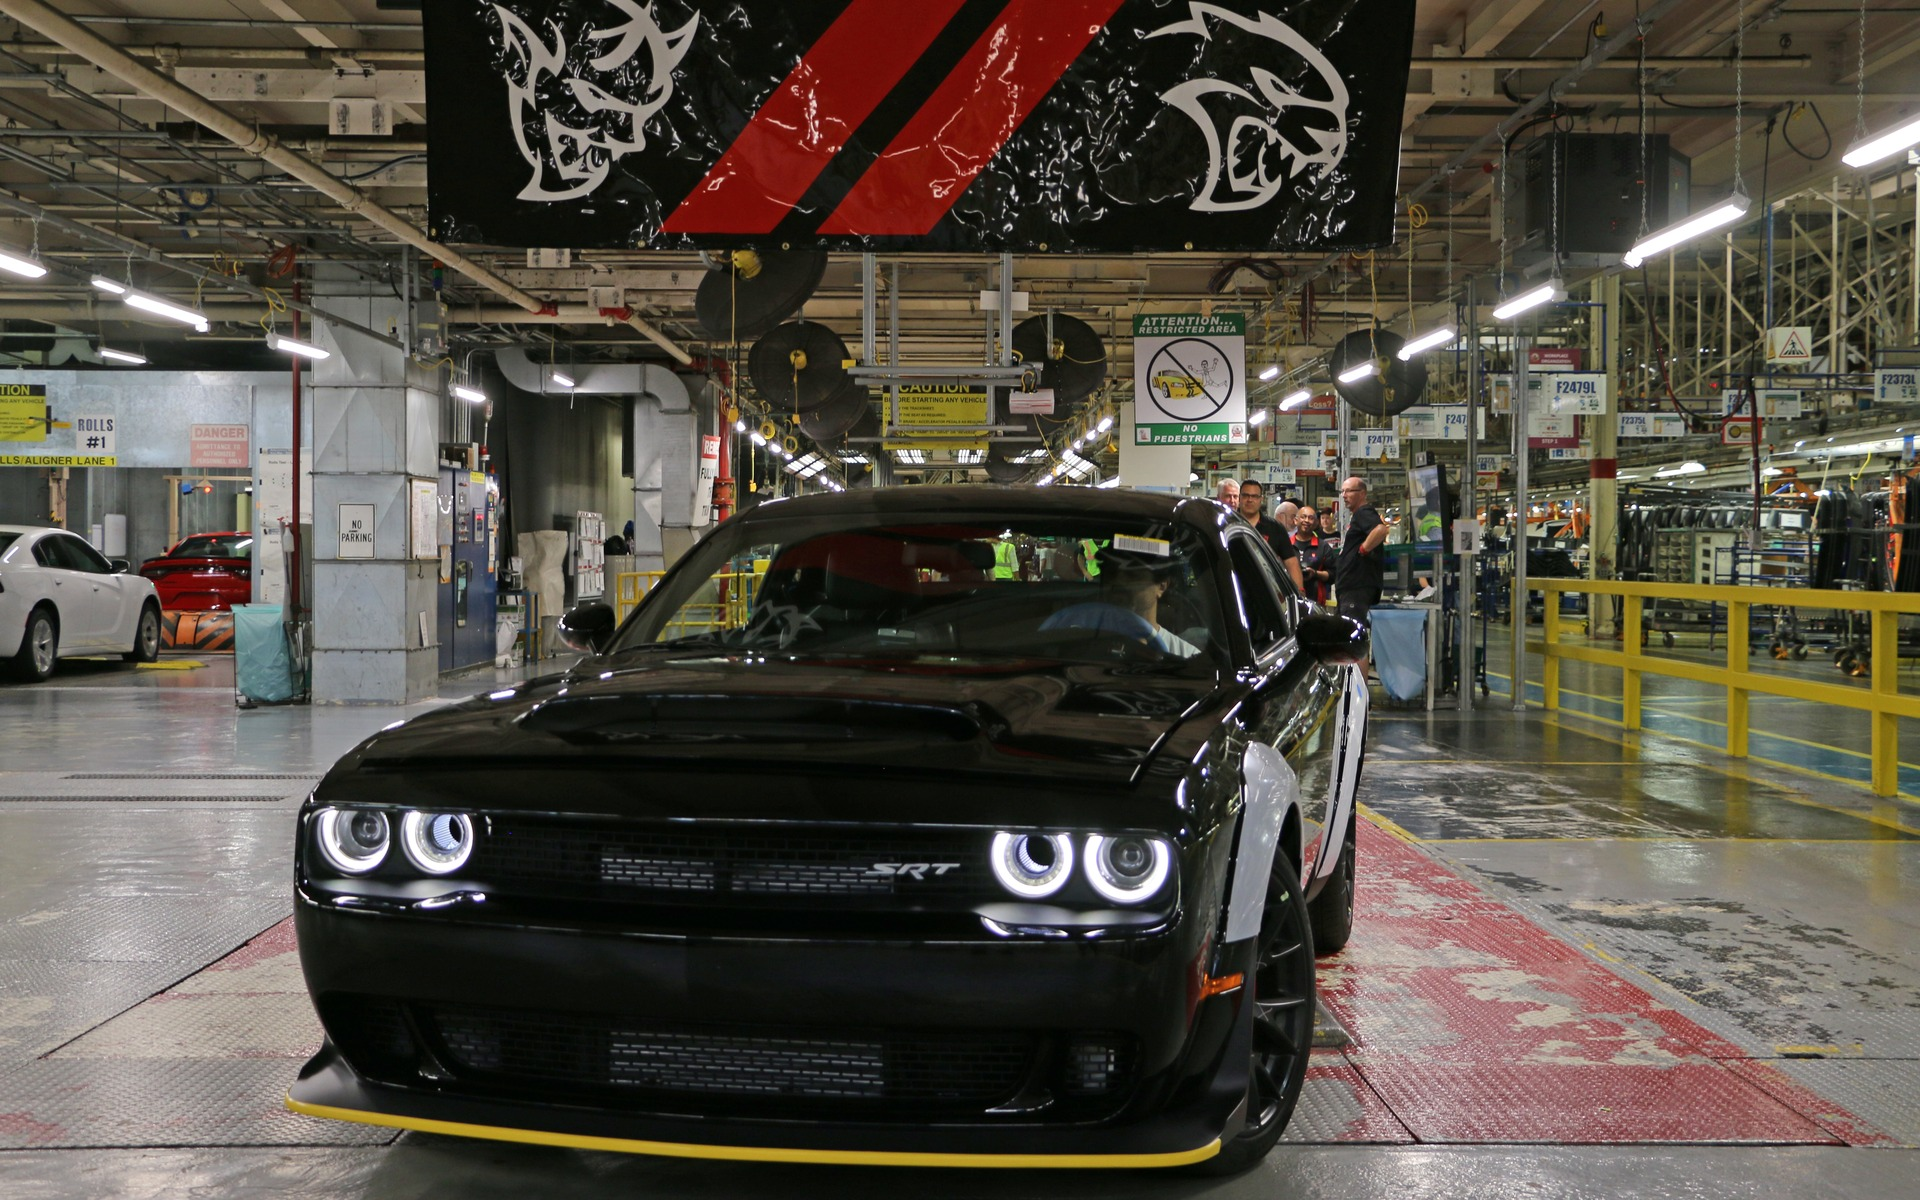 Final 2018 Dodge Challenger SRT Demon to roll off the assembly line